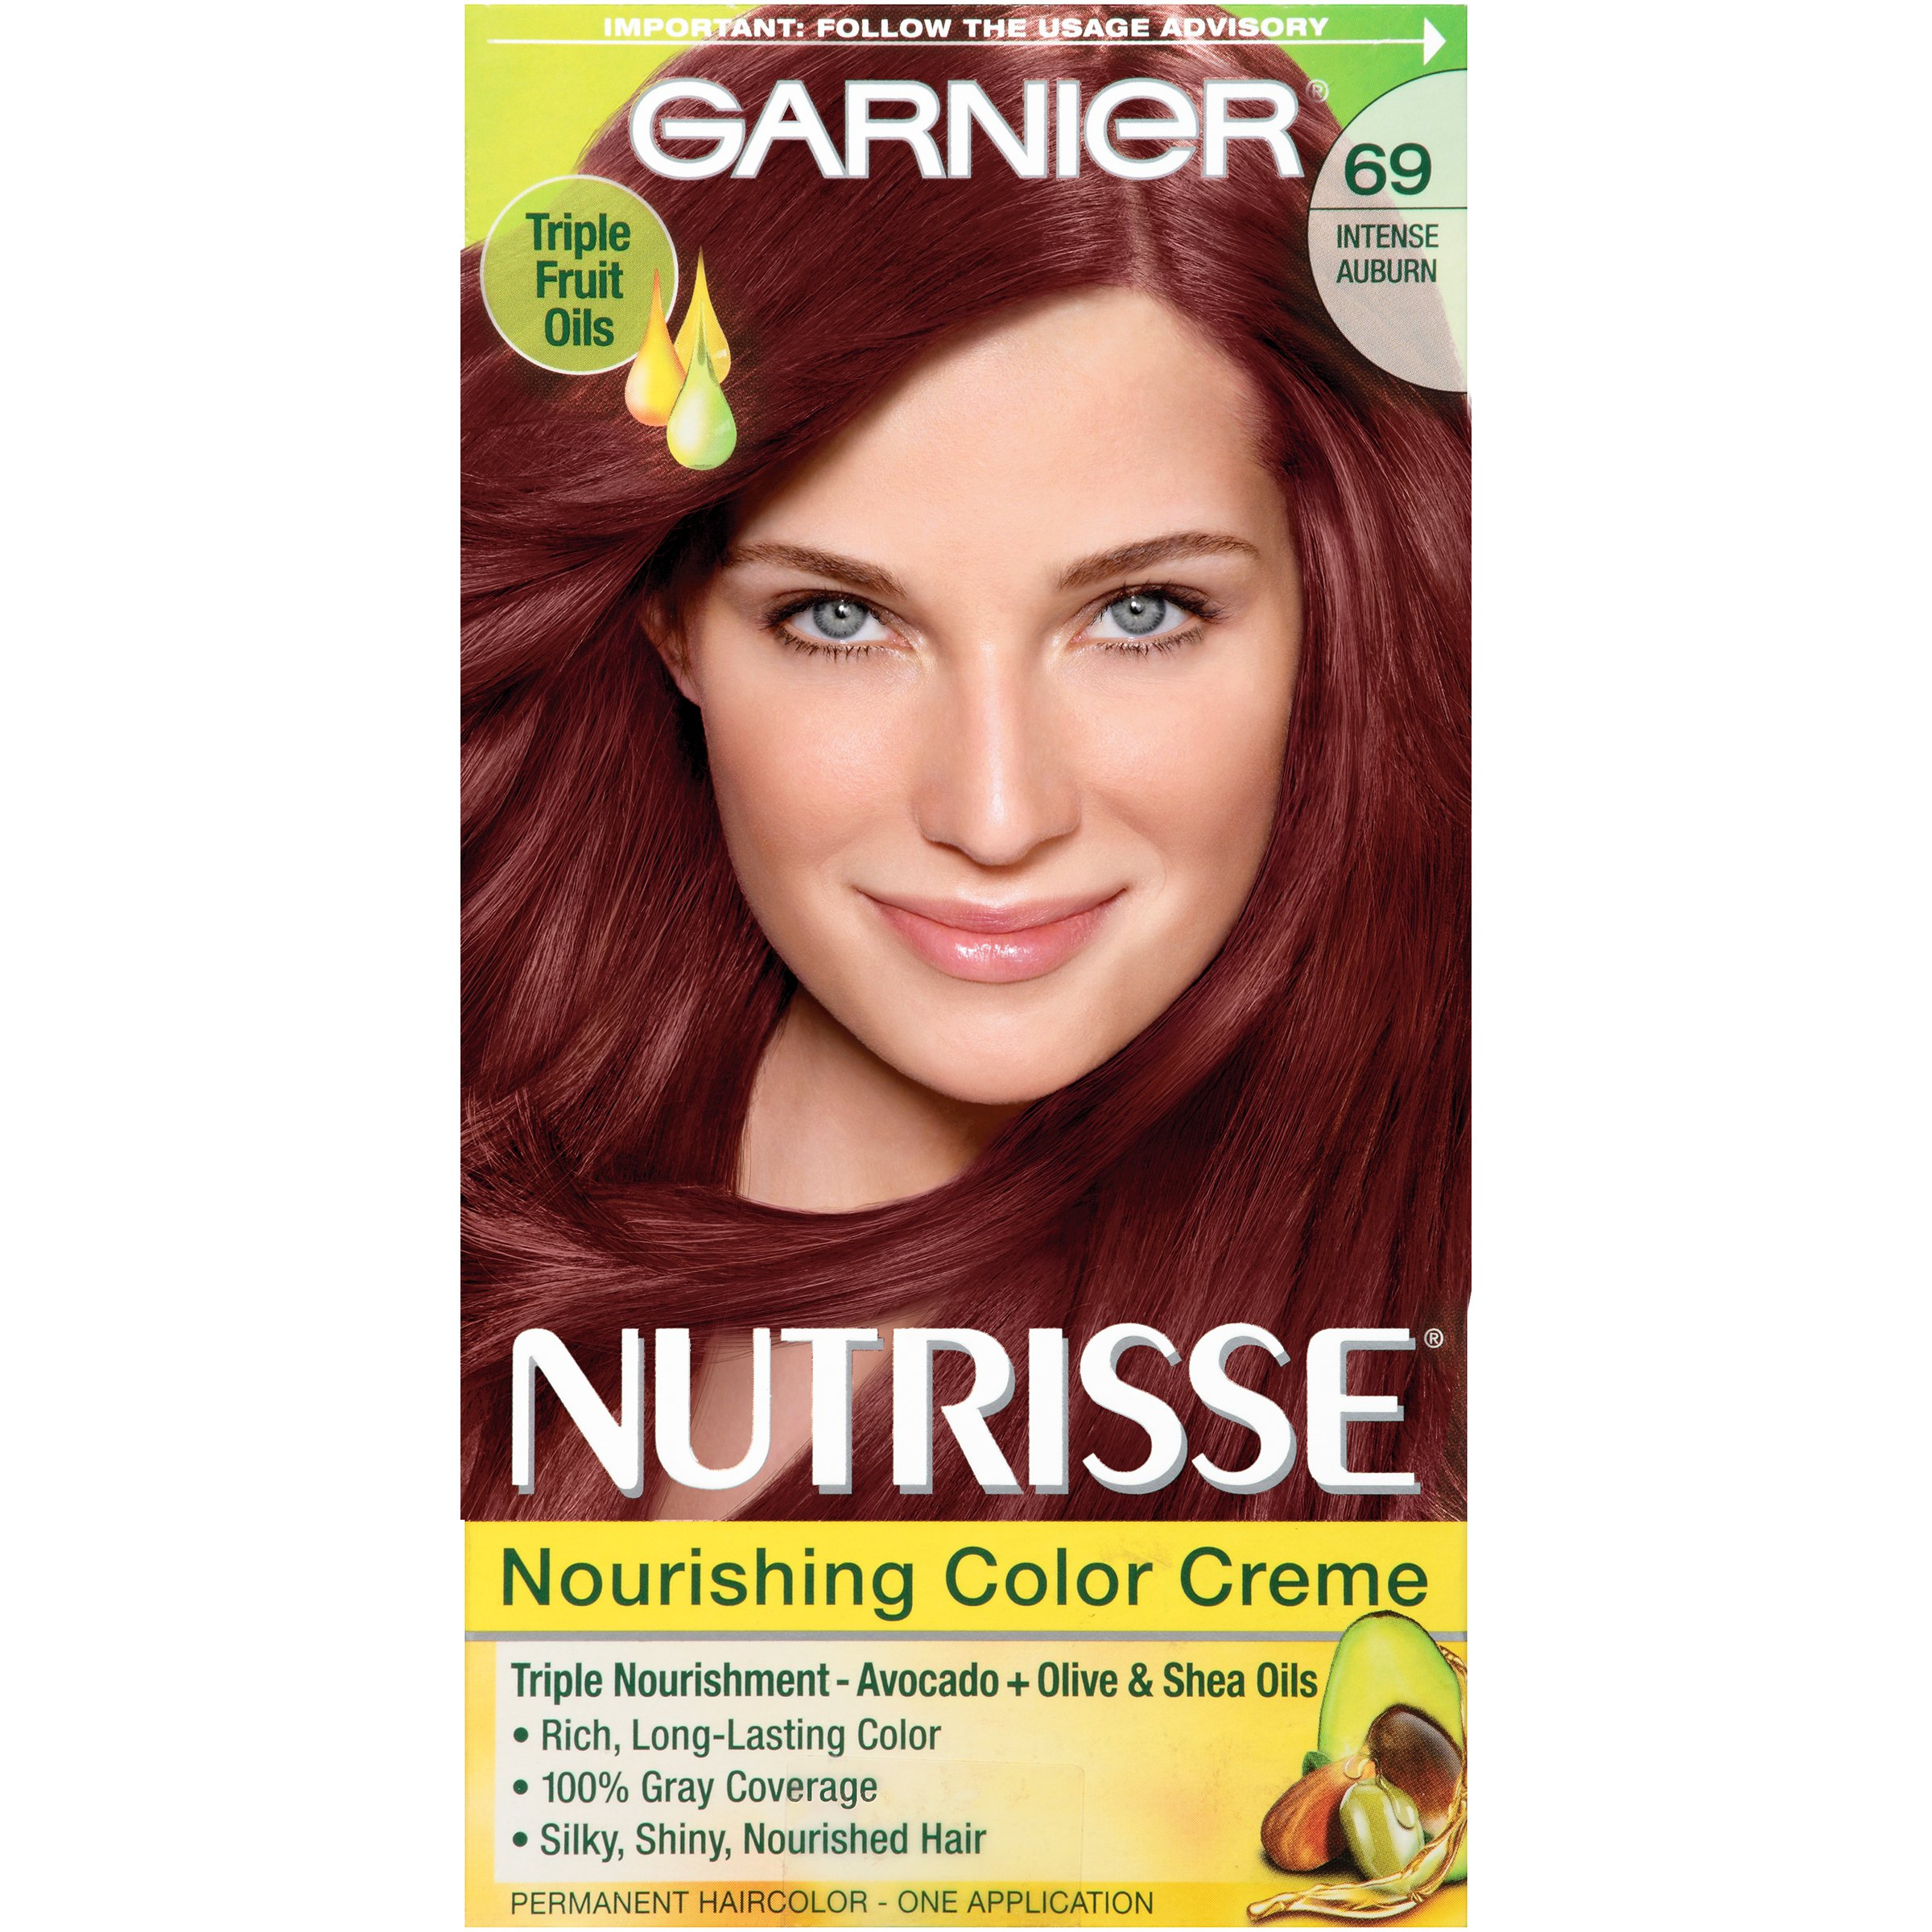 Amazon Garnier Nutrisse Nourishing Color Creme 69 Intense